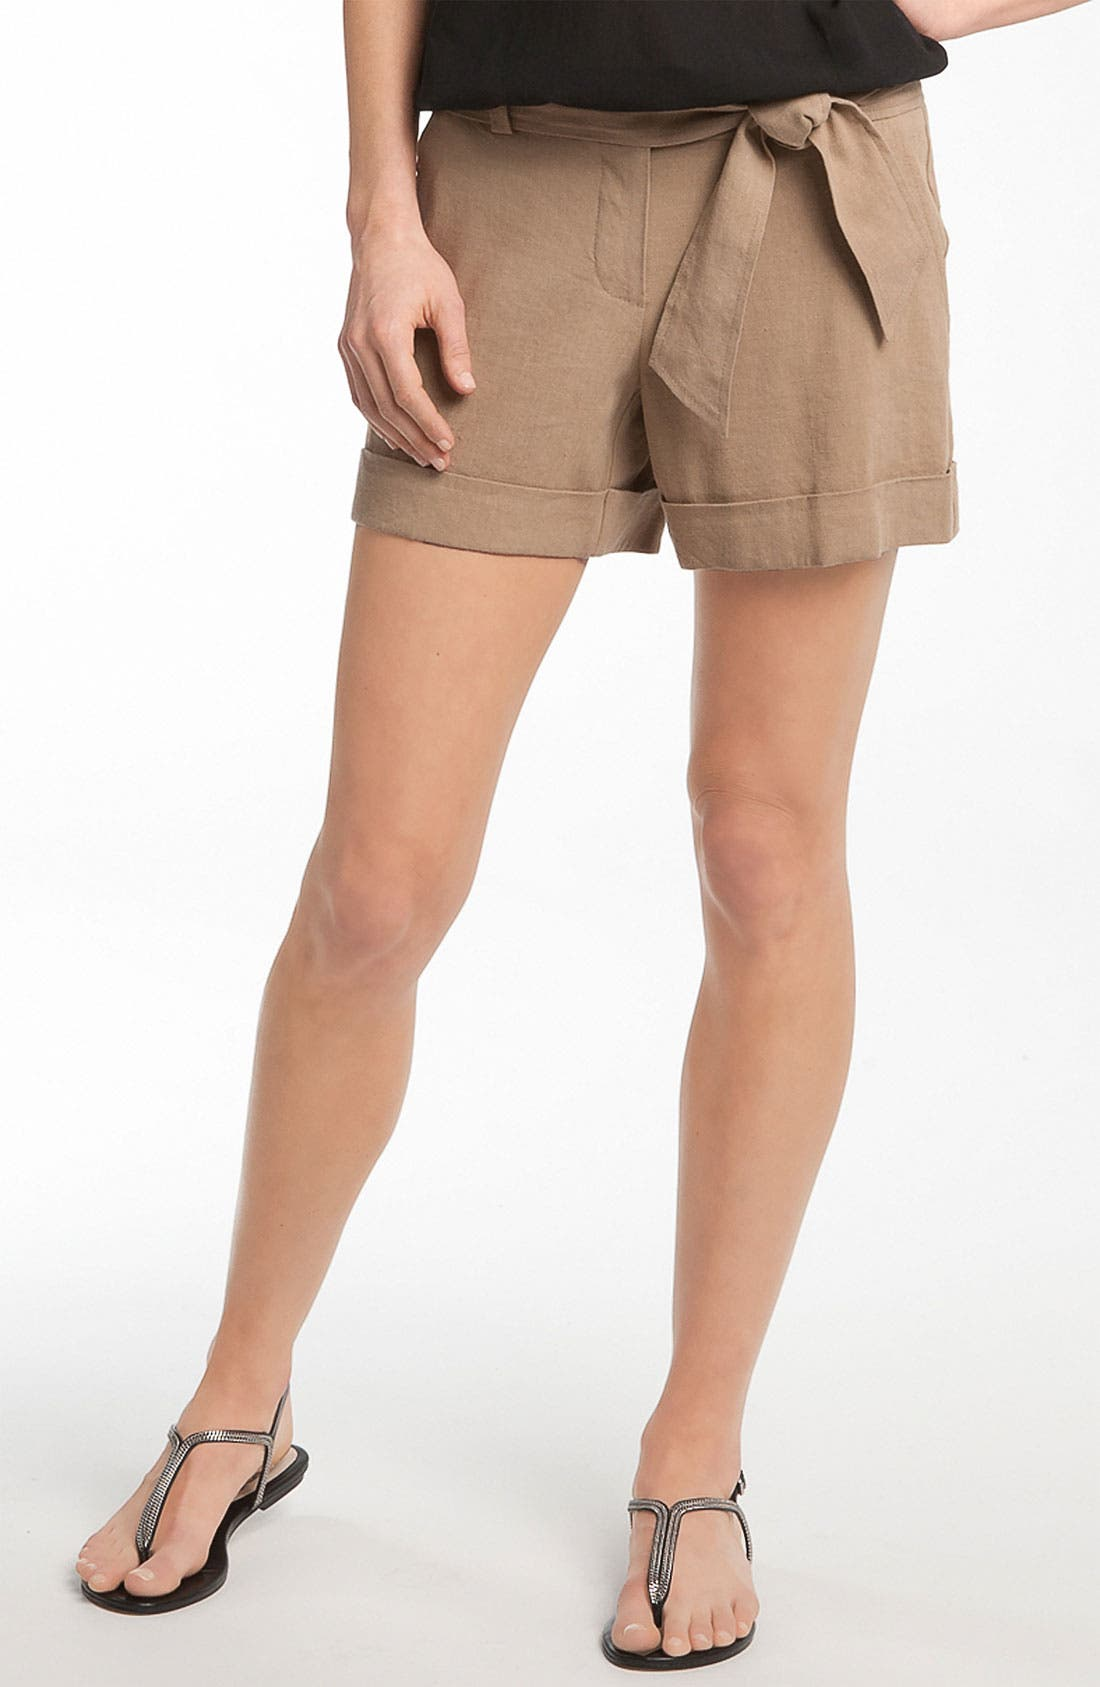 Alternate Image 1 Selected - Trina Turk 'Alto Cinco' Cuff Shorts